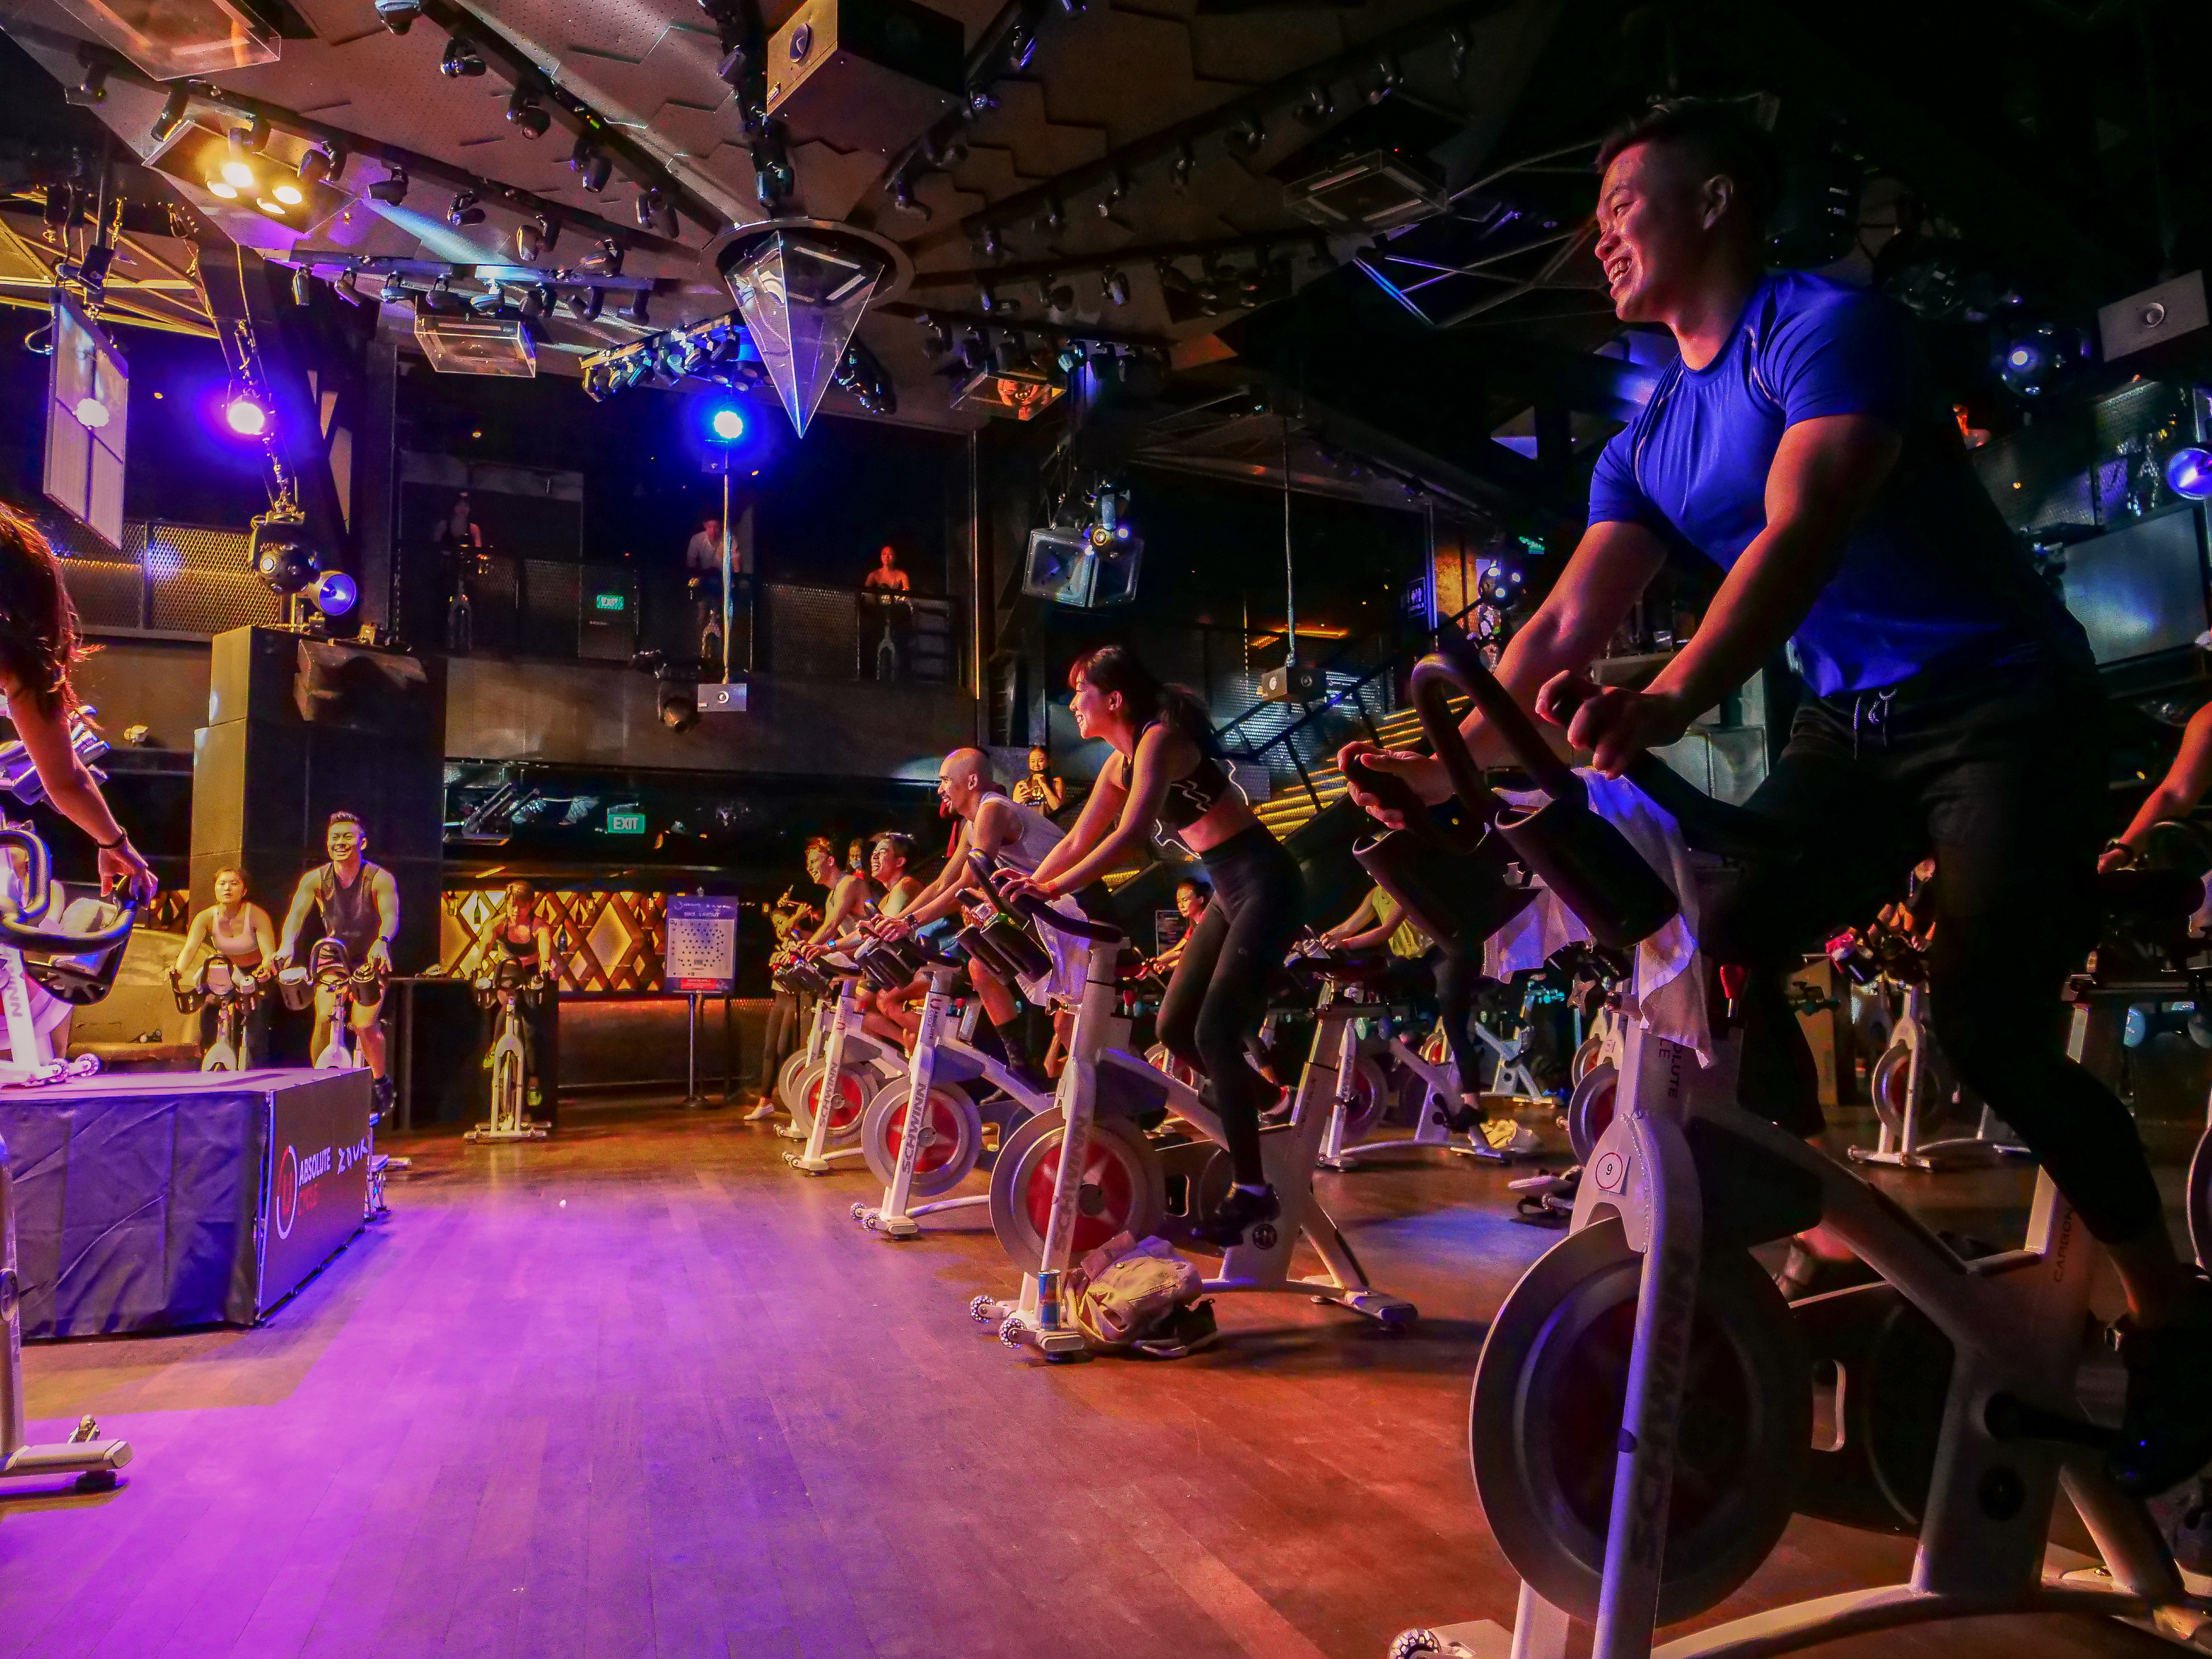 The best spin classes and cycling studios in Singapore